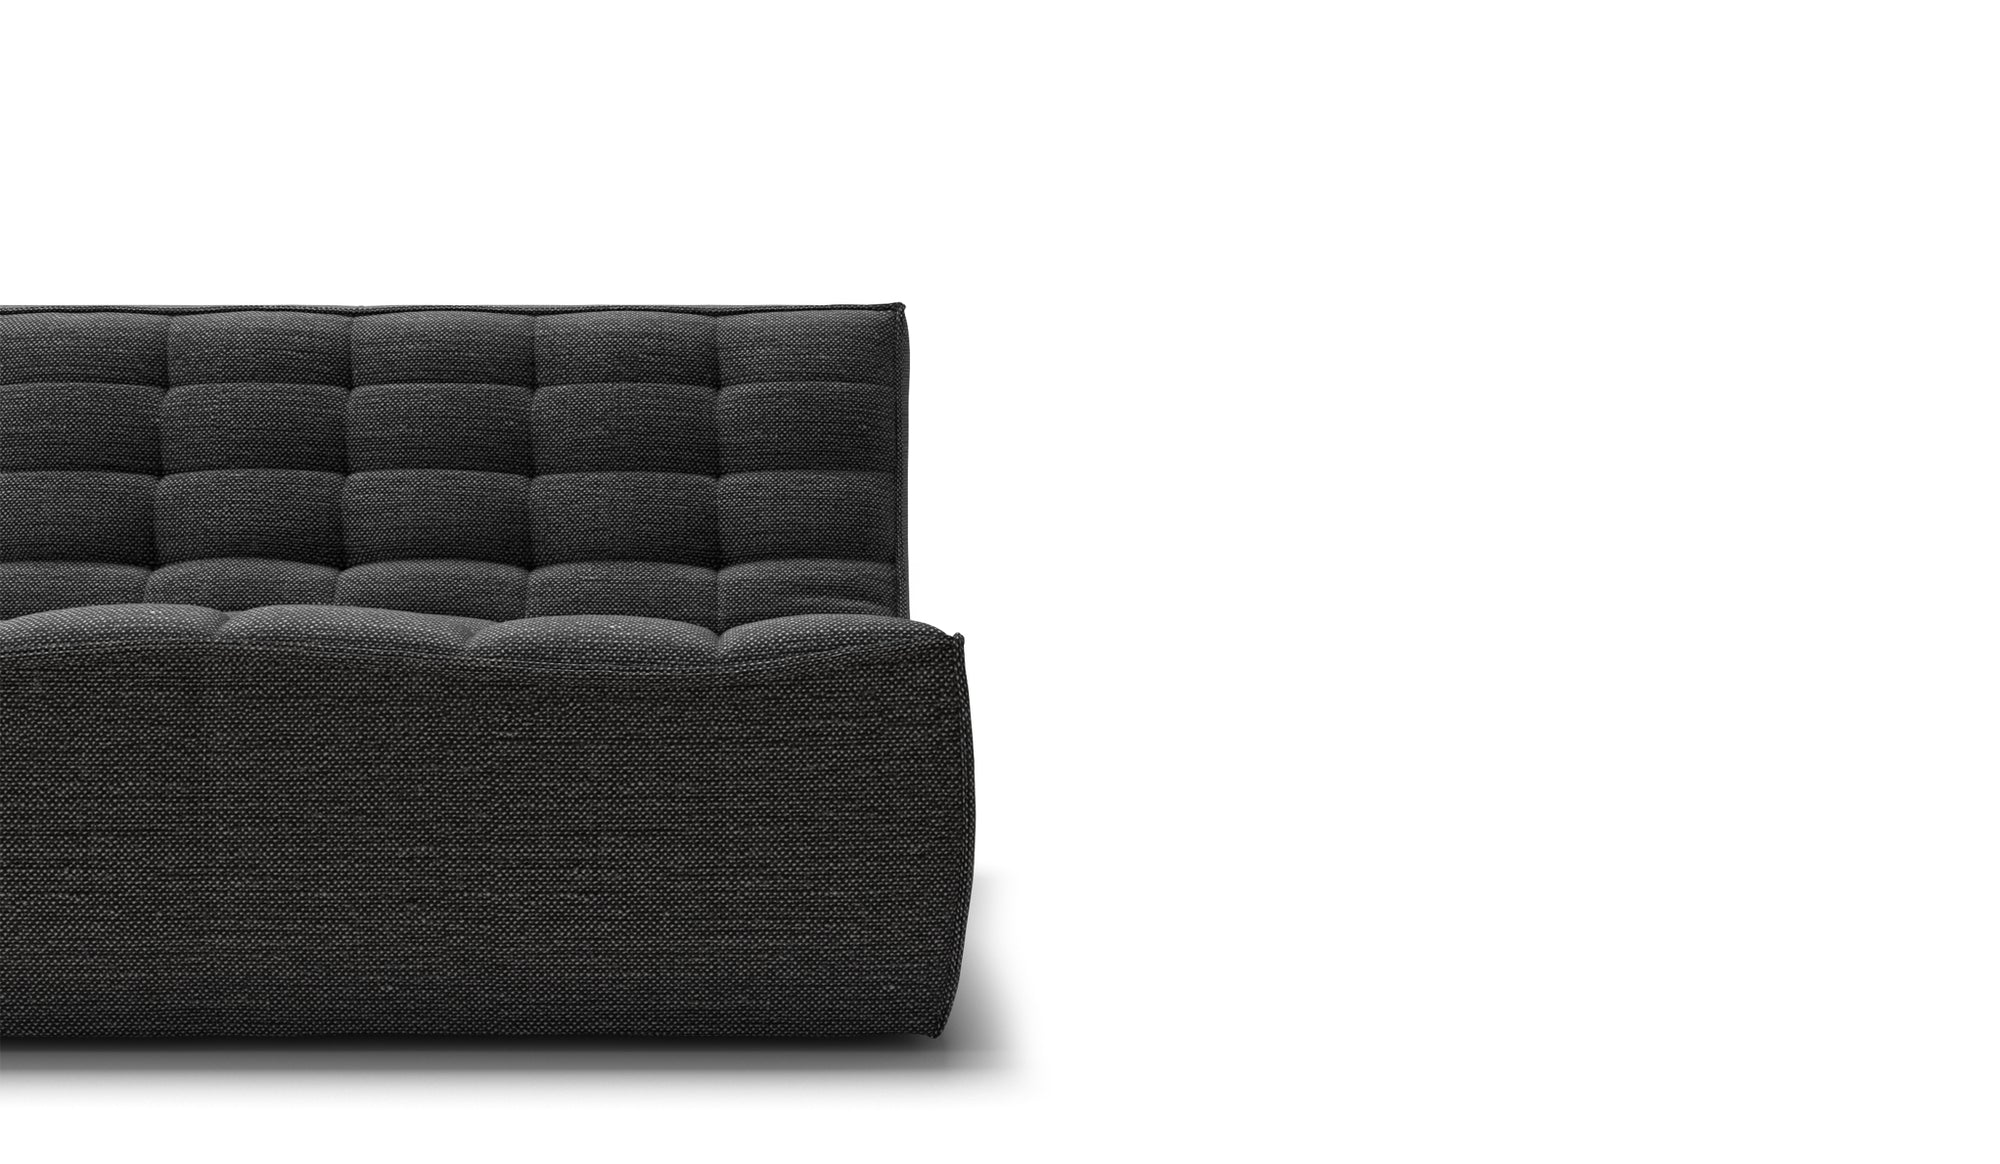 Nord Sofa | 3 Seater